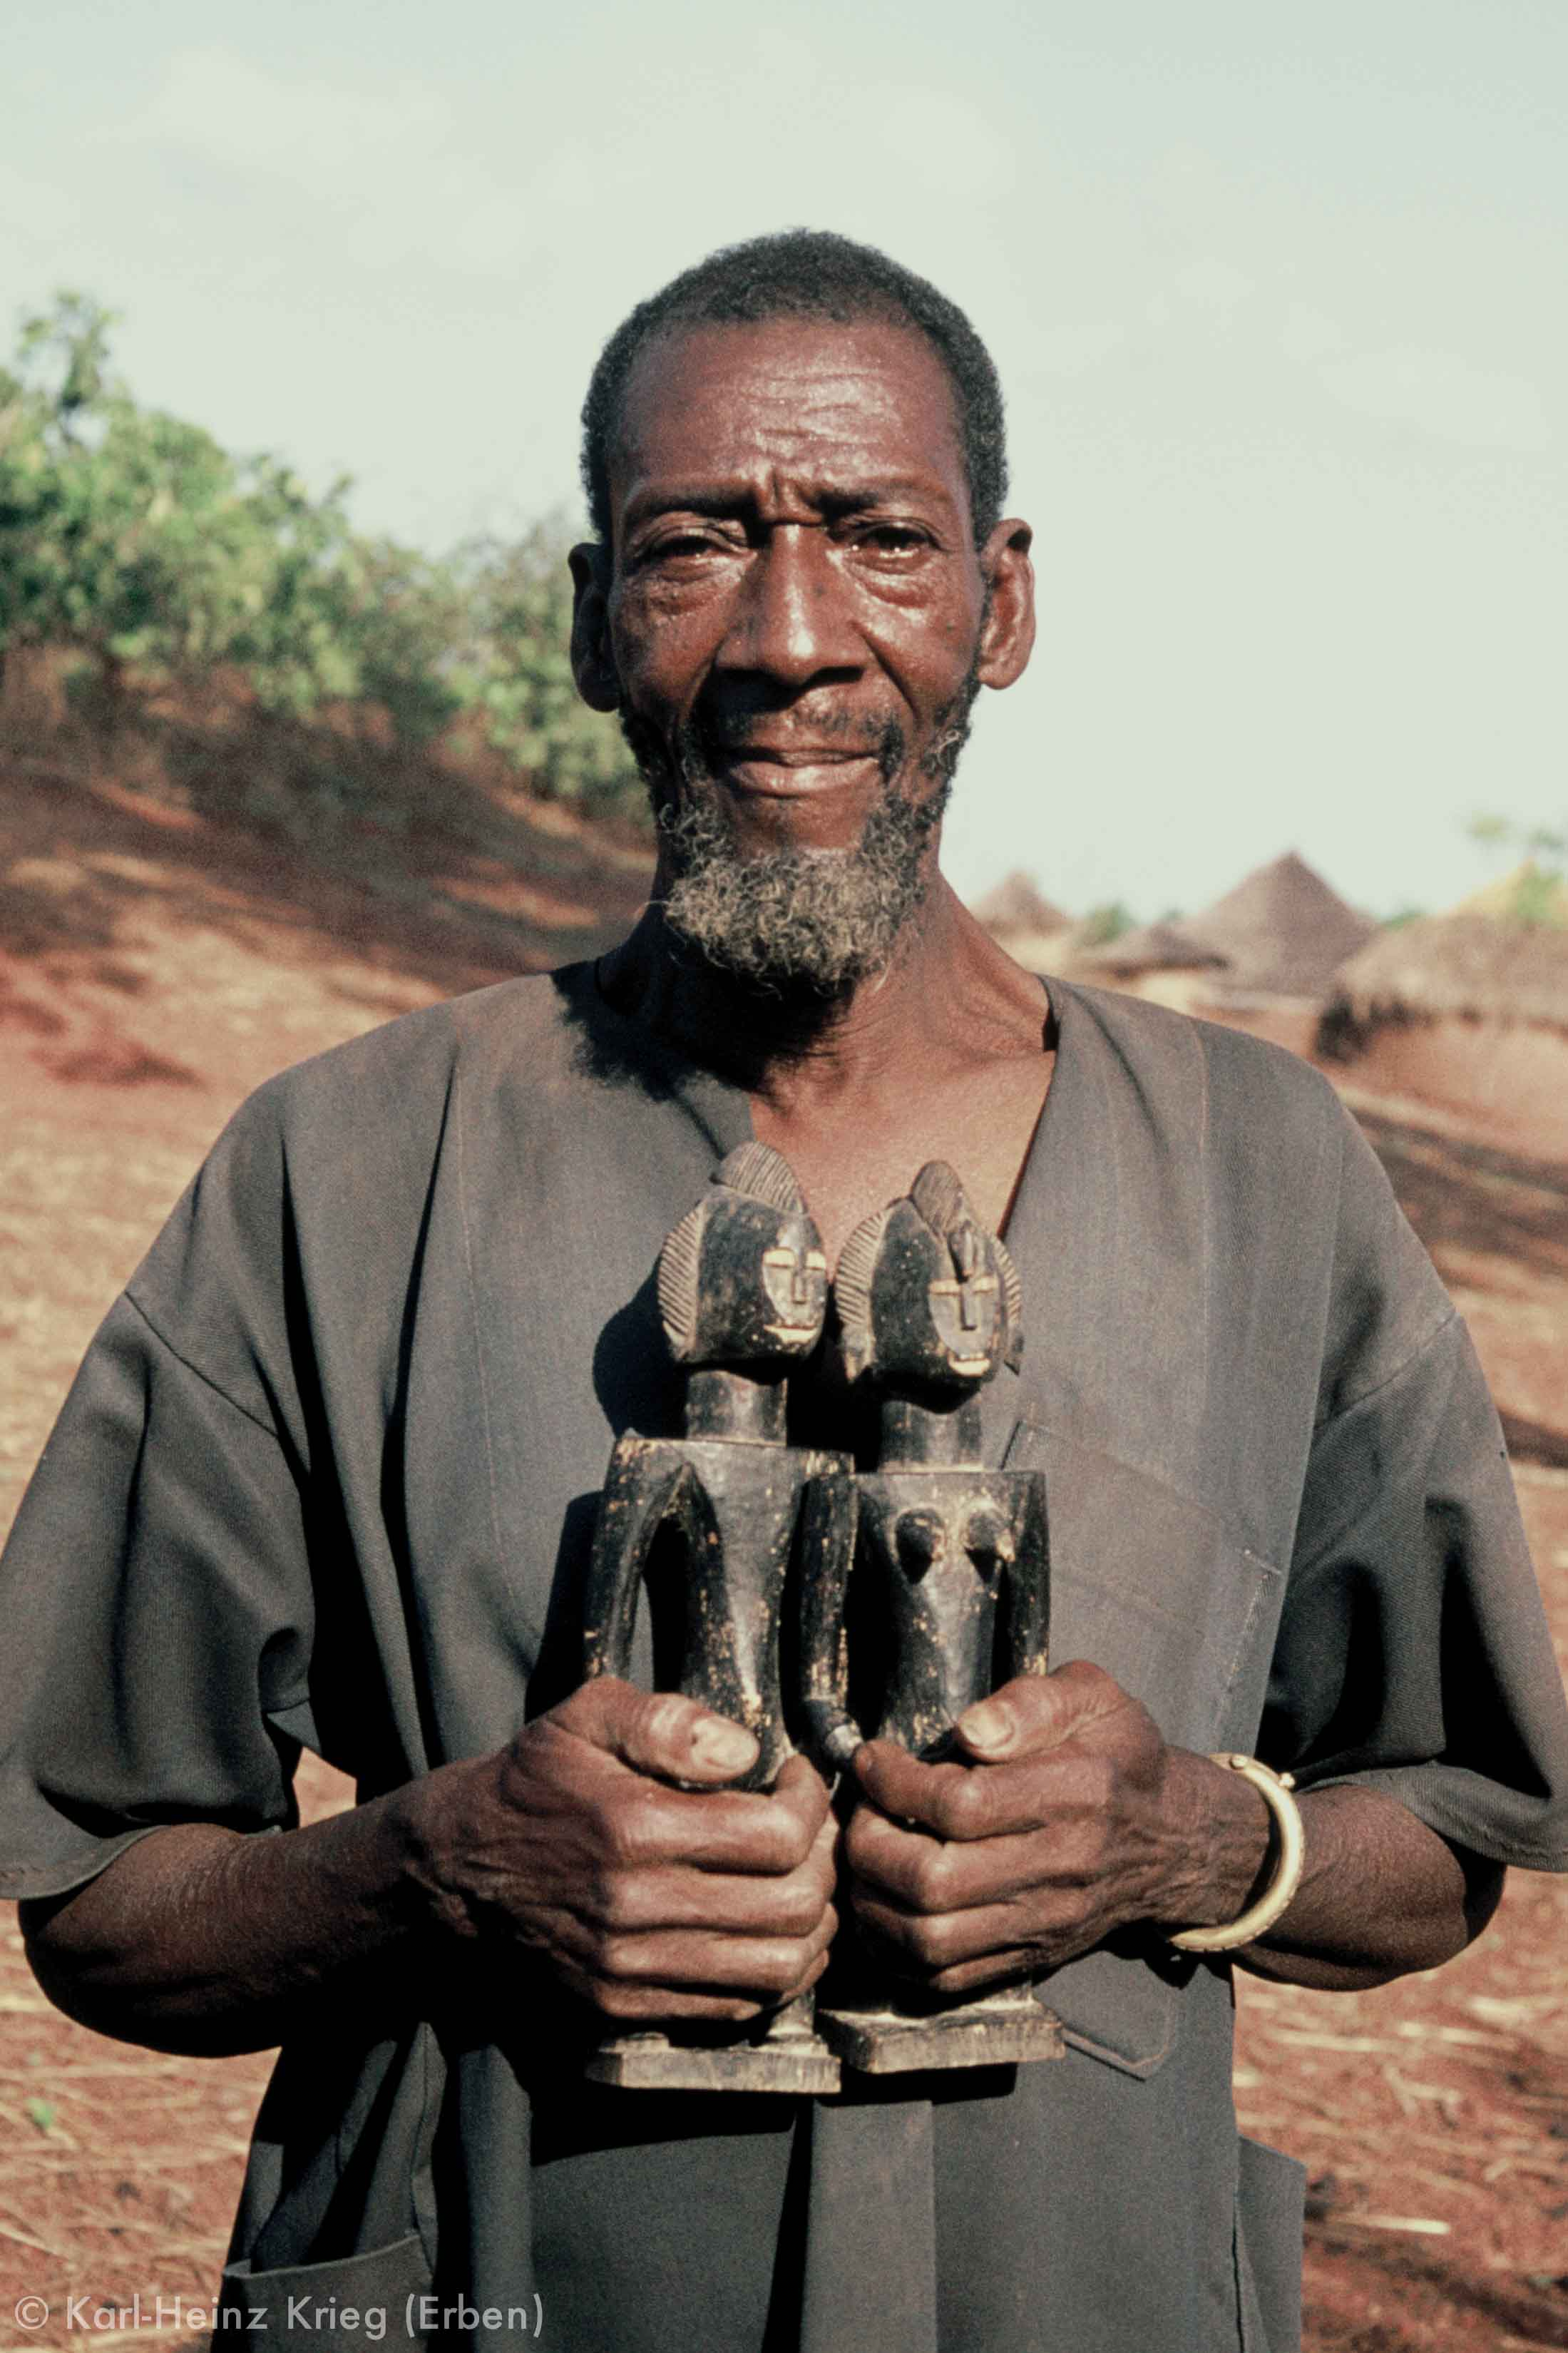 Dossounon Koné with a pair of figures made by him. Photo: Karl-Heinz Krieg, Odia (Region of Boundiali, Côte d'Ivoire), 1976